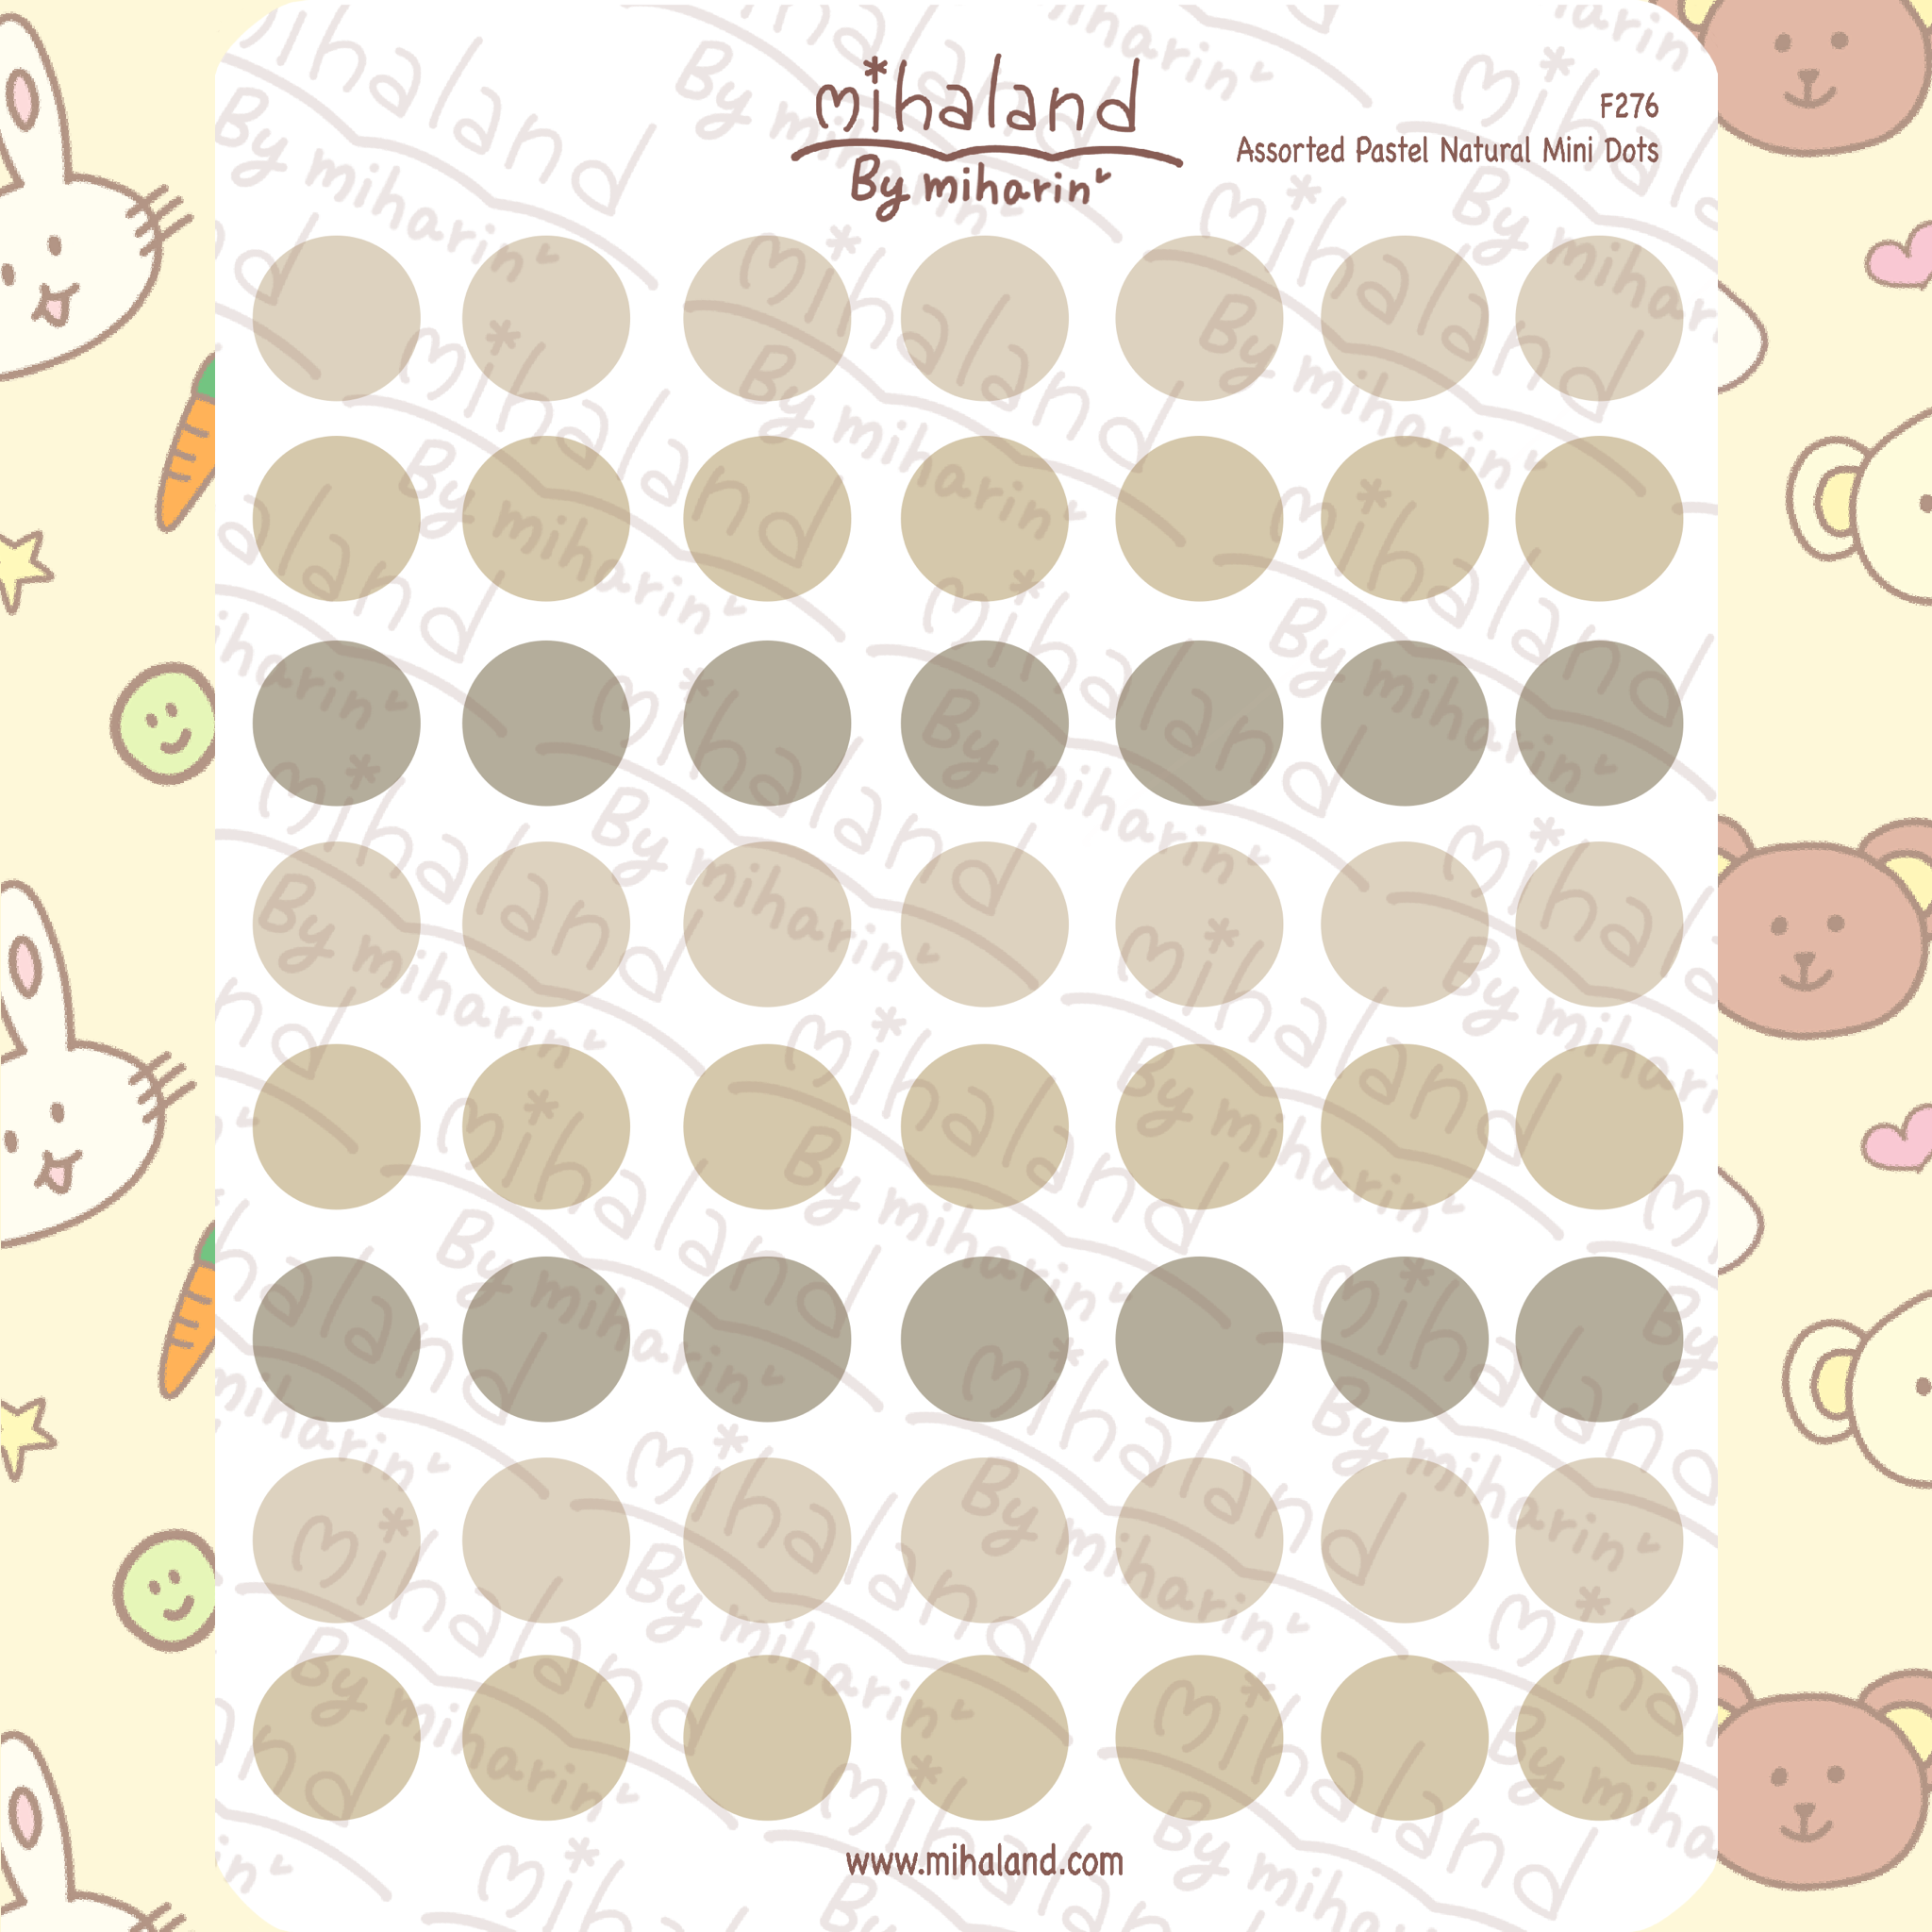 Assorted Pastel Natural Mini Dots Planner Stickers (F276)